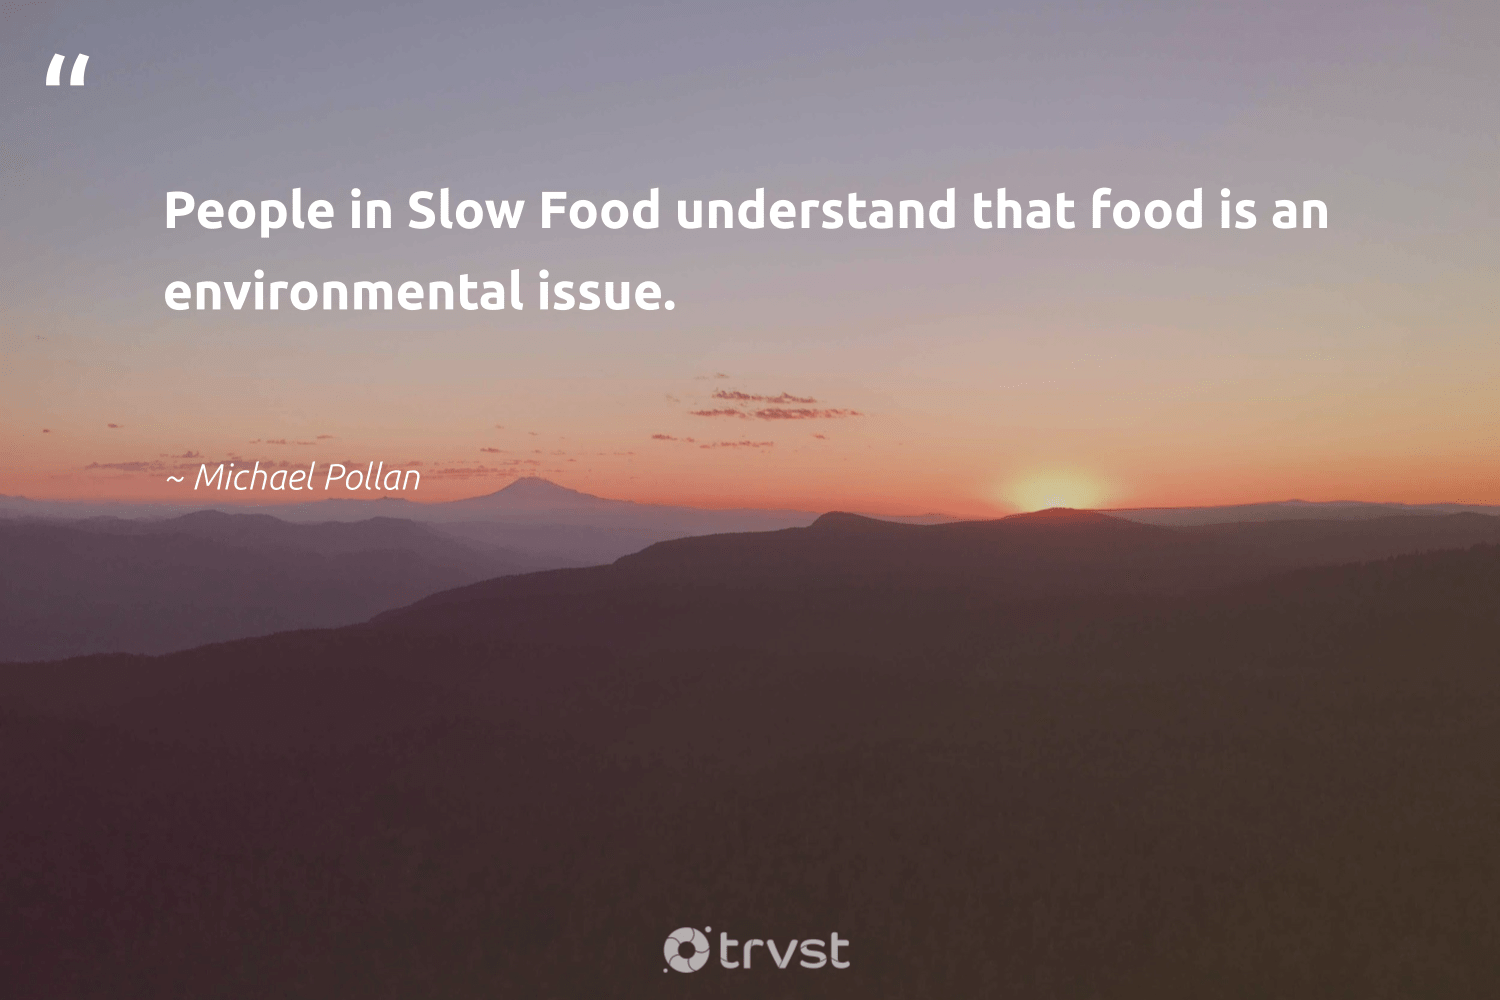 """People in Slow Food understand that food is an environmental issue.""  - Michael Pollan #trvst #quotes #environmental #food #hunger #mindset #sustainablefutures #planetearthfirst #hungry #nevergiveup #equalopportunity #dotherightthing"